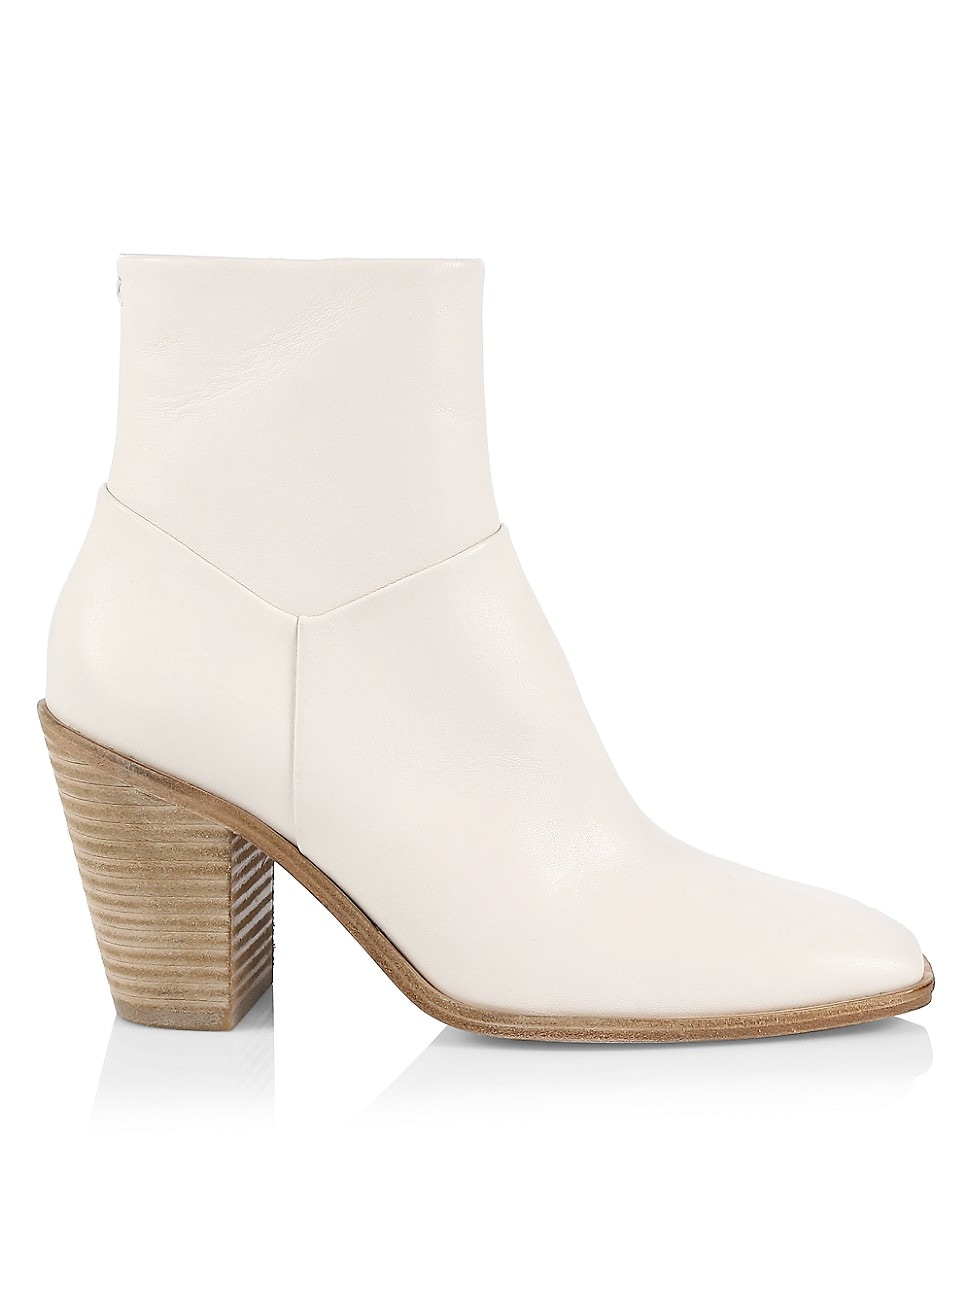 Rag & Bone WOMEN'S AXEL LEATHER ANKLE BOOTS